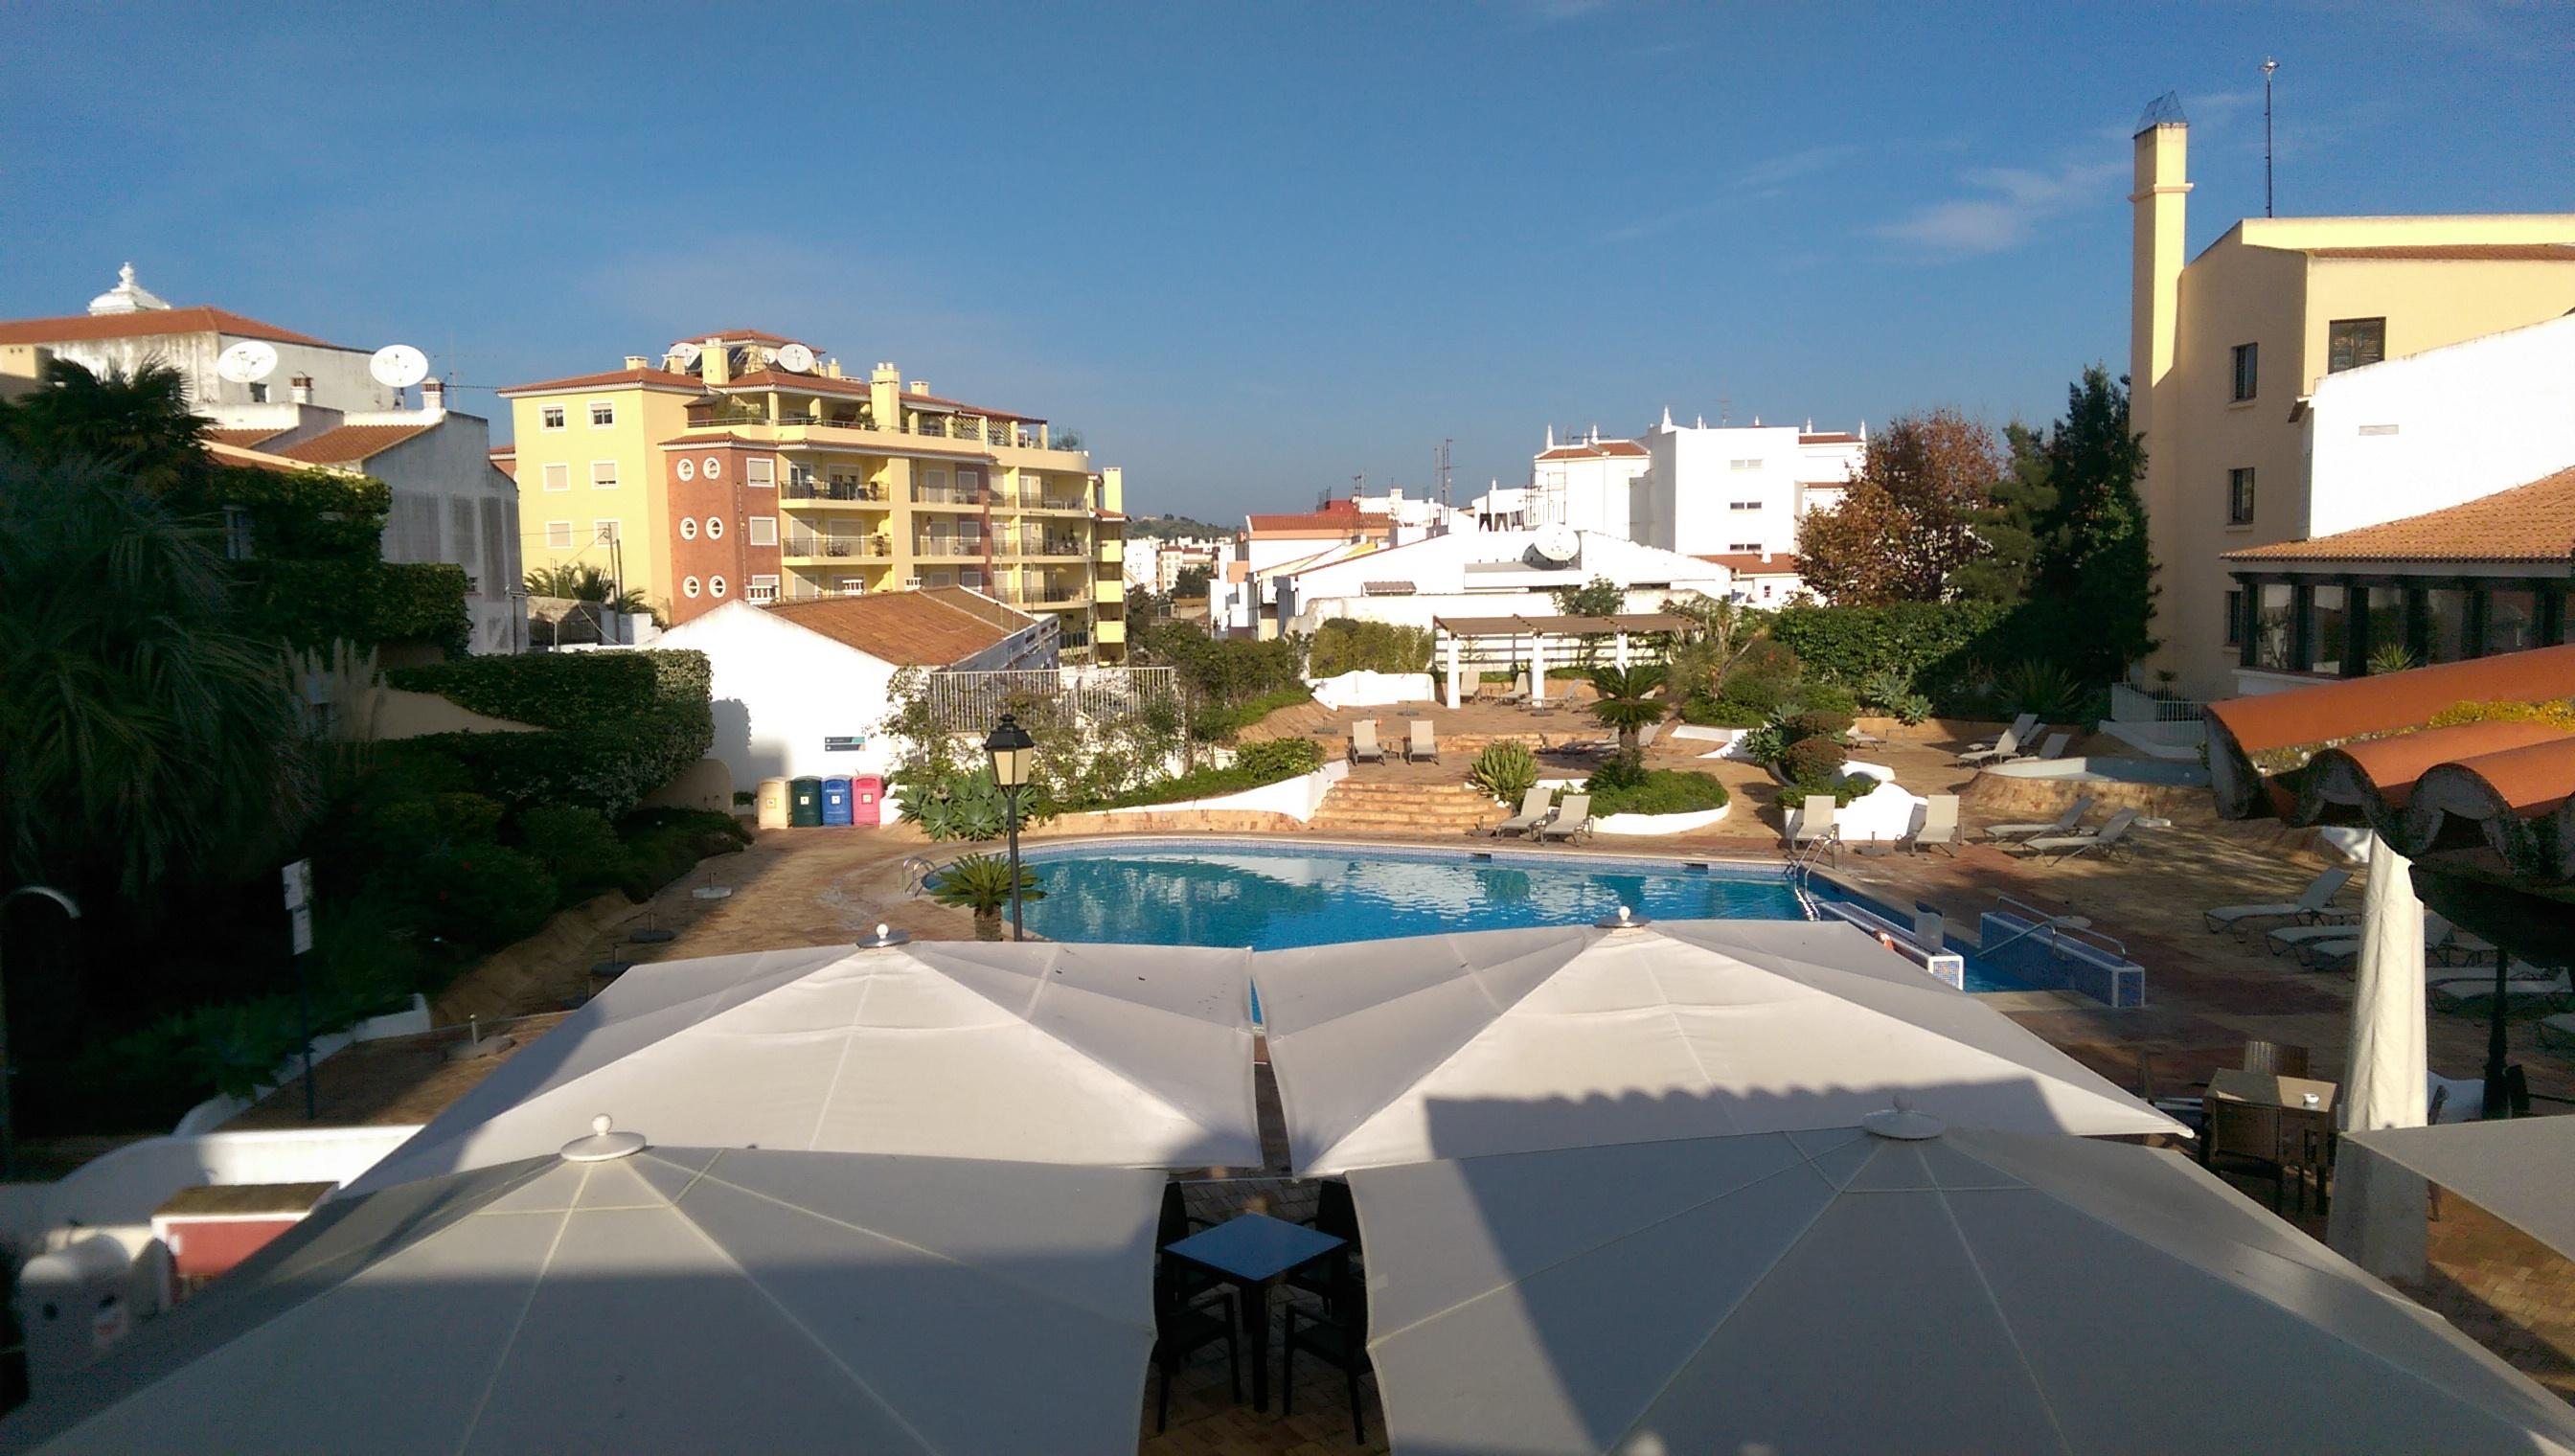 Tivoli Lagos Algarve Tivoli Lagos Reviews Photos Rates Ebookers Ie